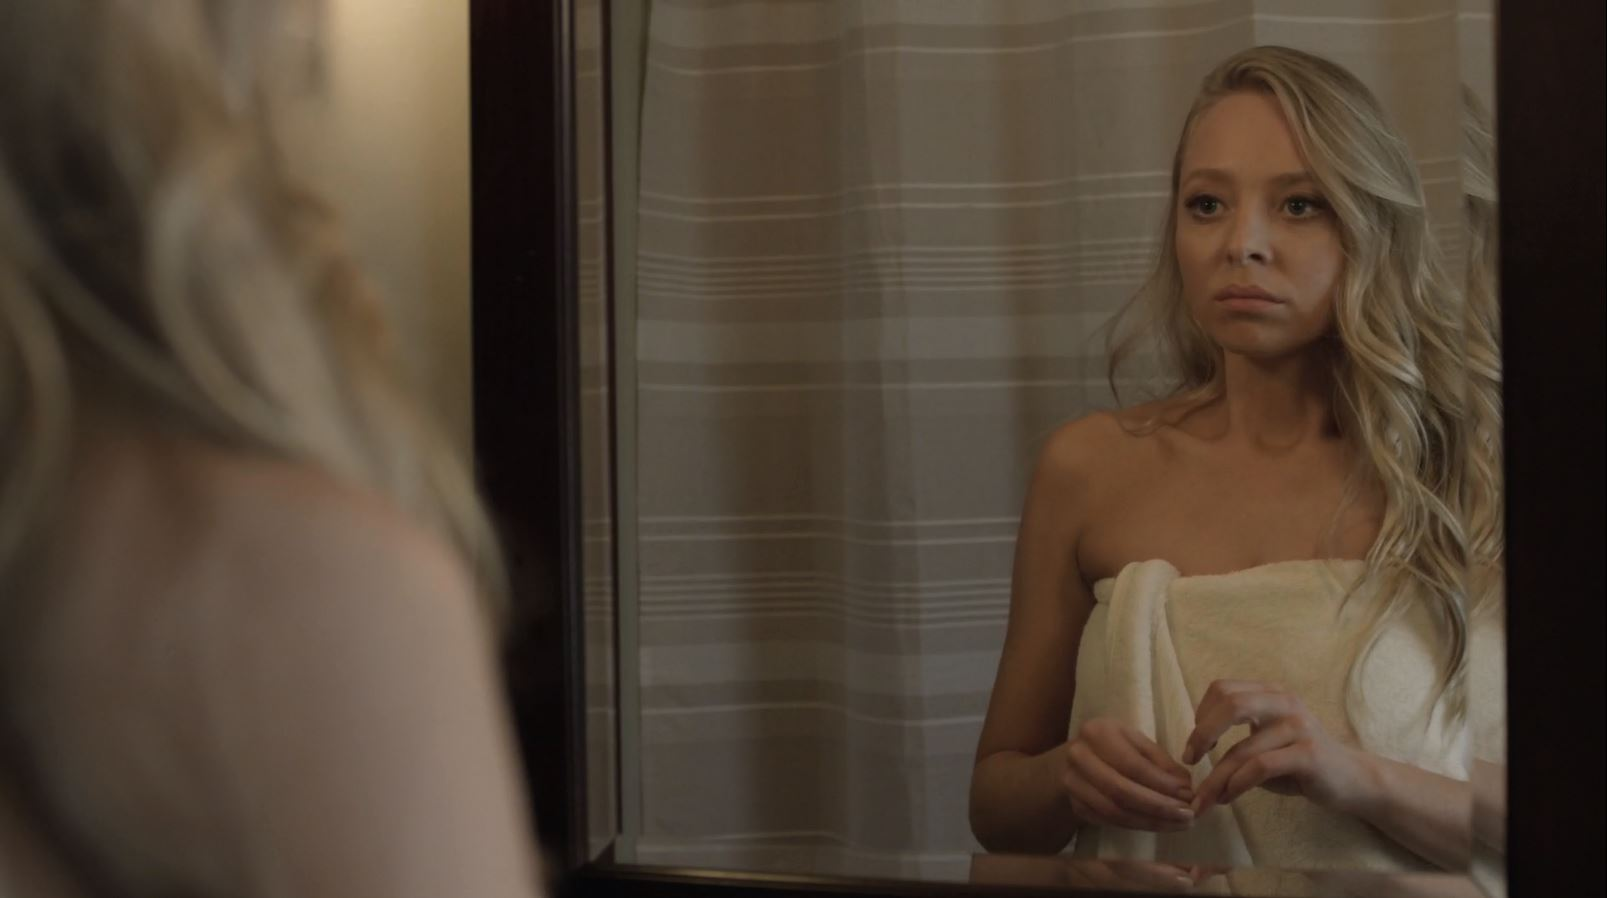 Portia Doubleday as Angela Moss. Mr. Robot Episode 2 Review